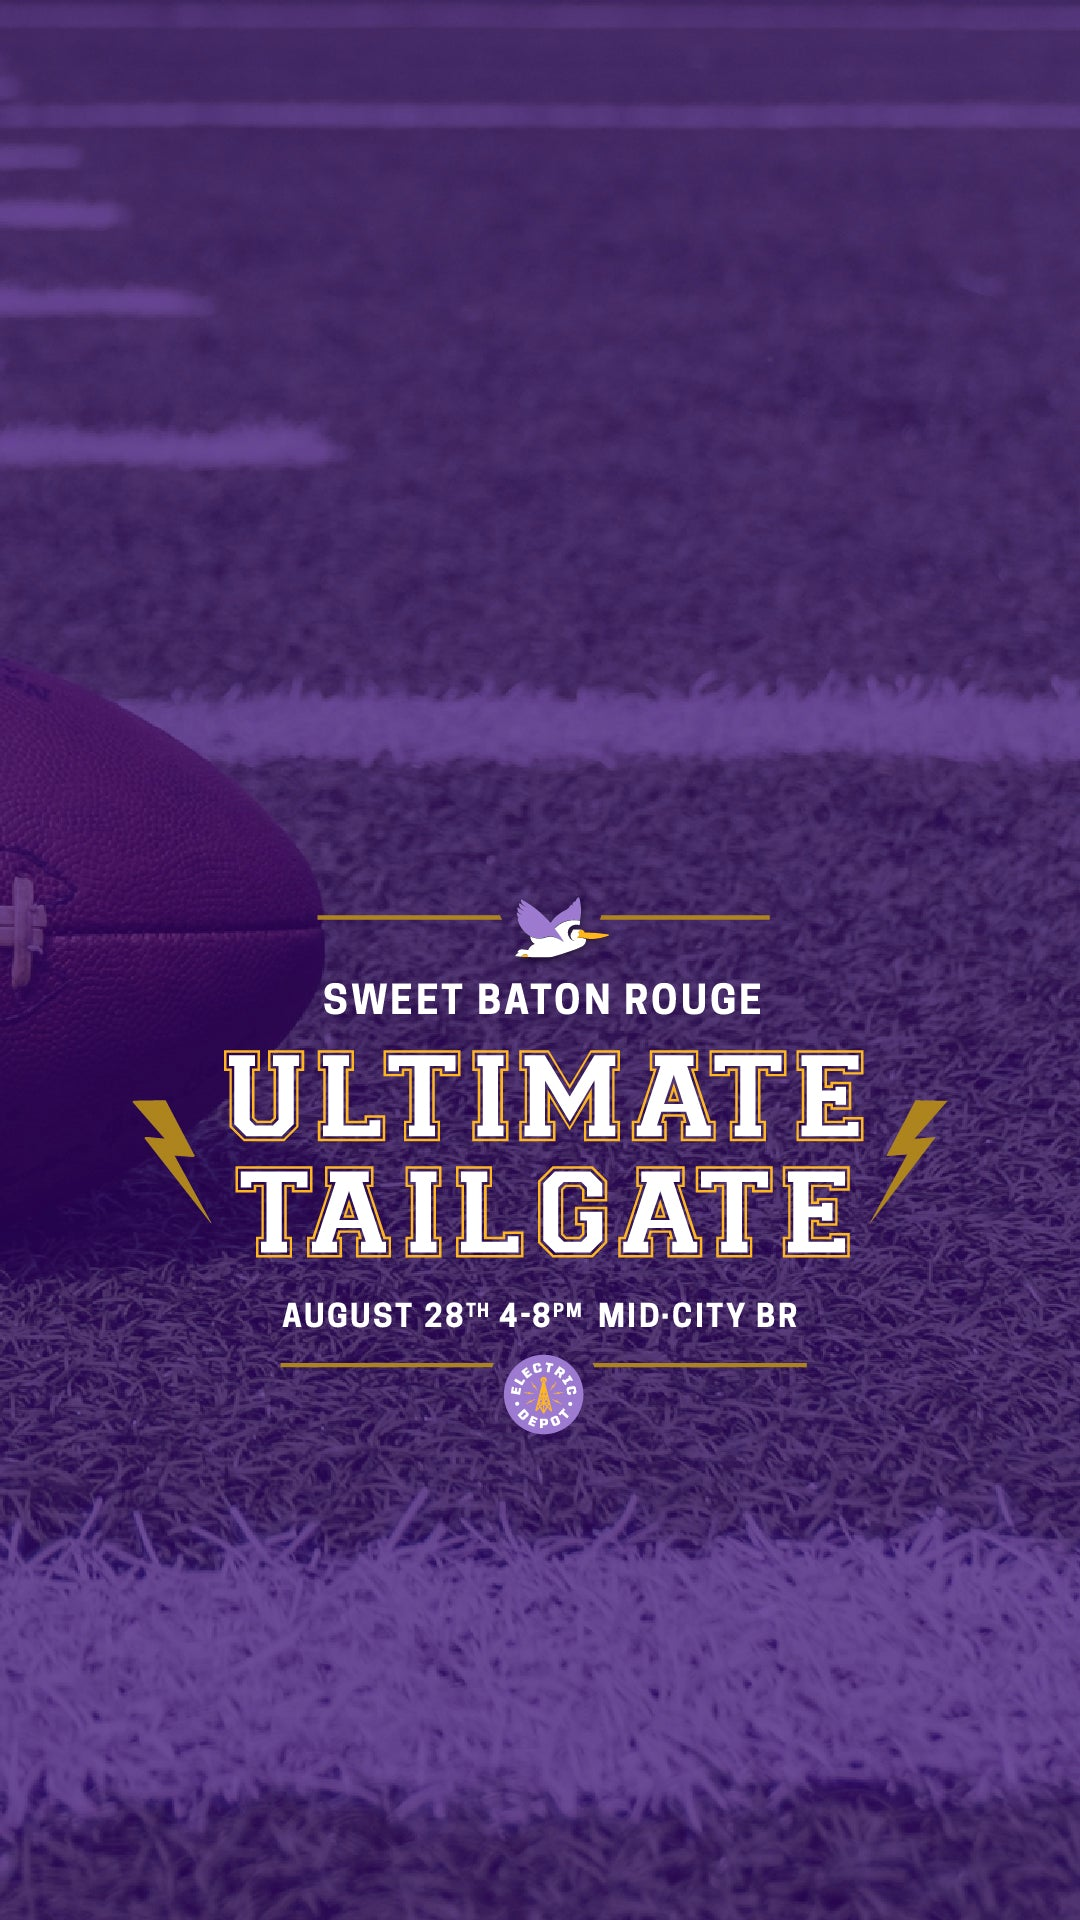 Sweet Baton Rouge Ultimate Tailgate at Electric Depot